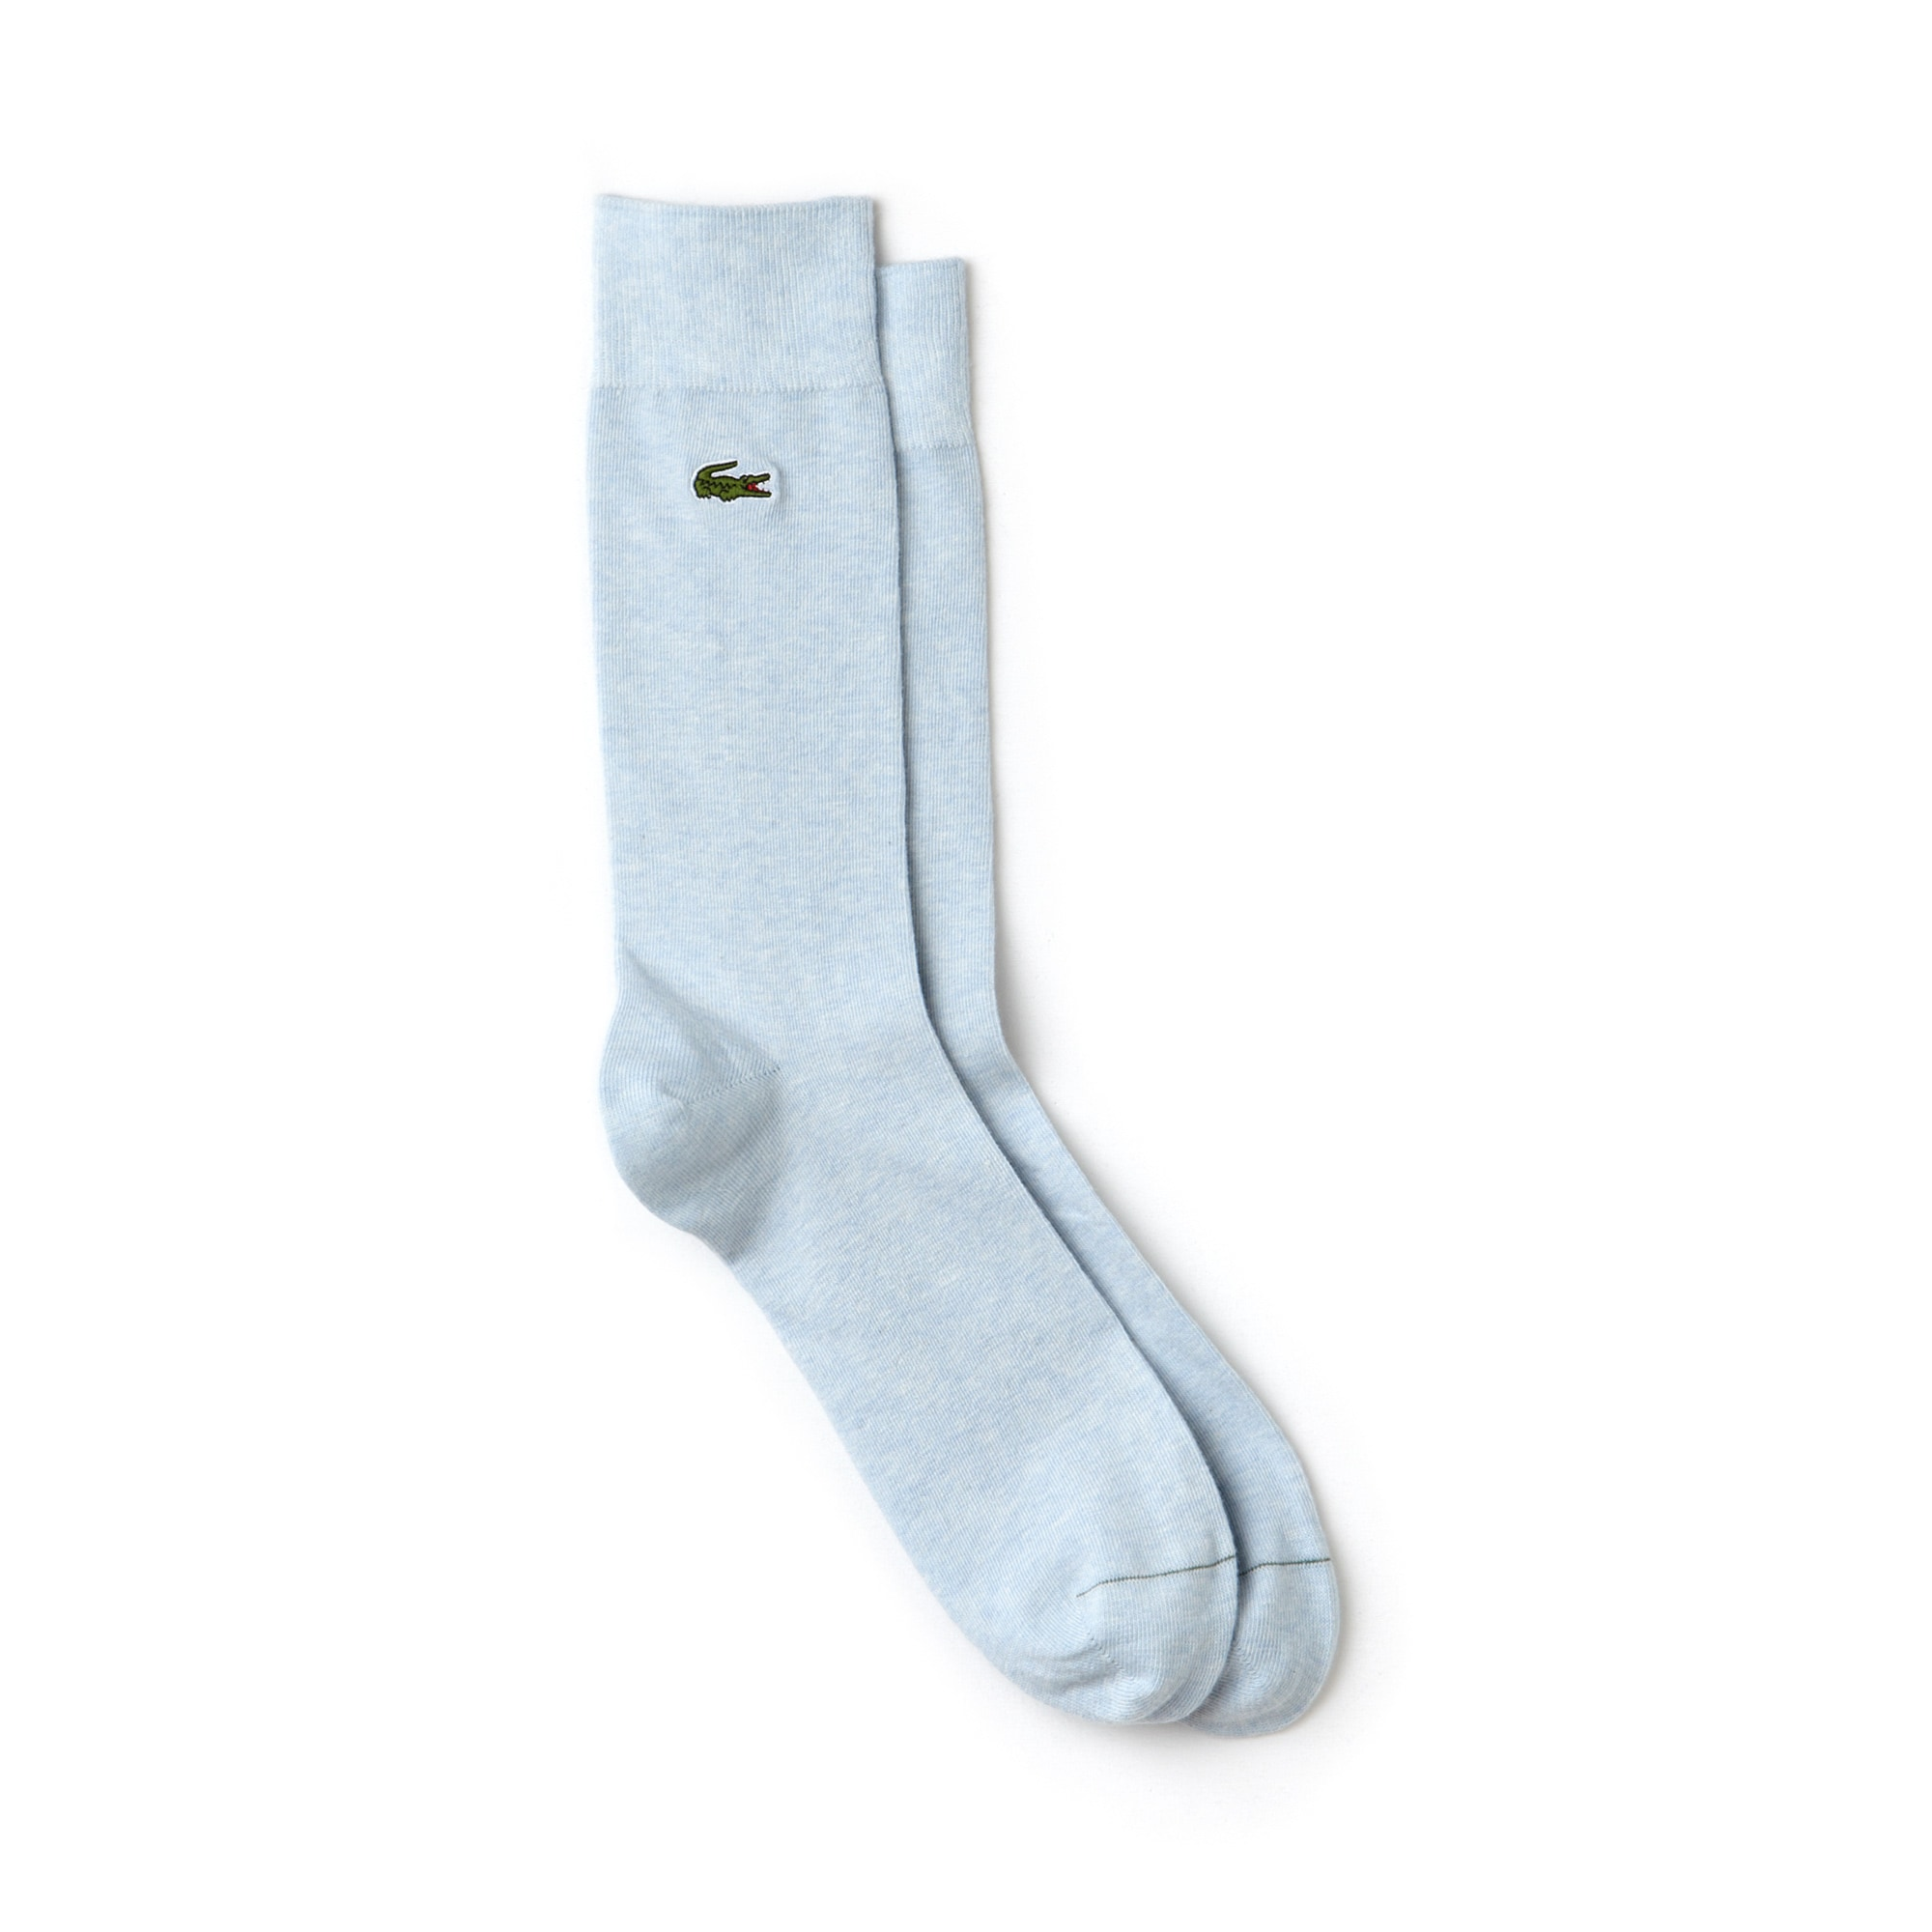 Men's Unicolor Jersey Socks